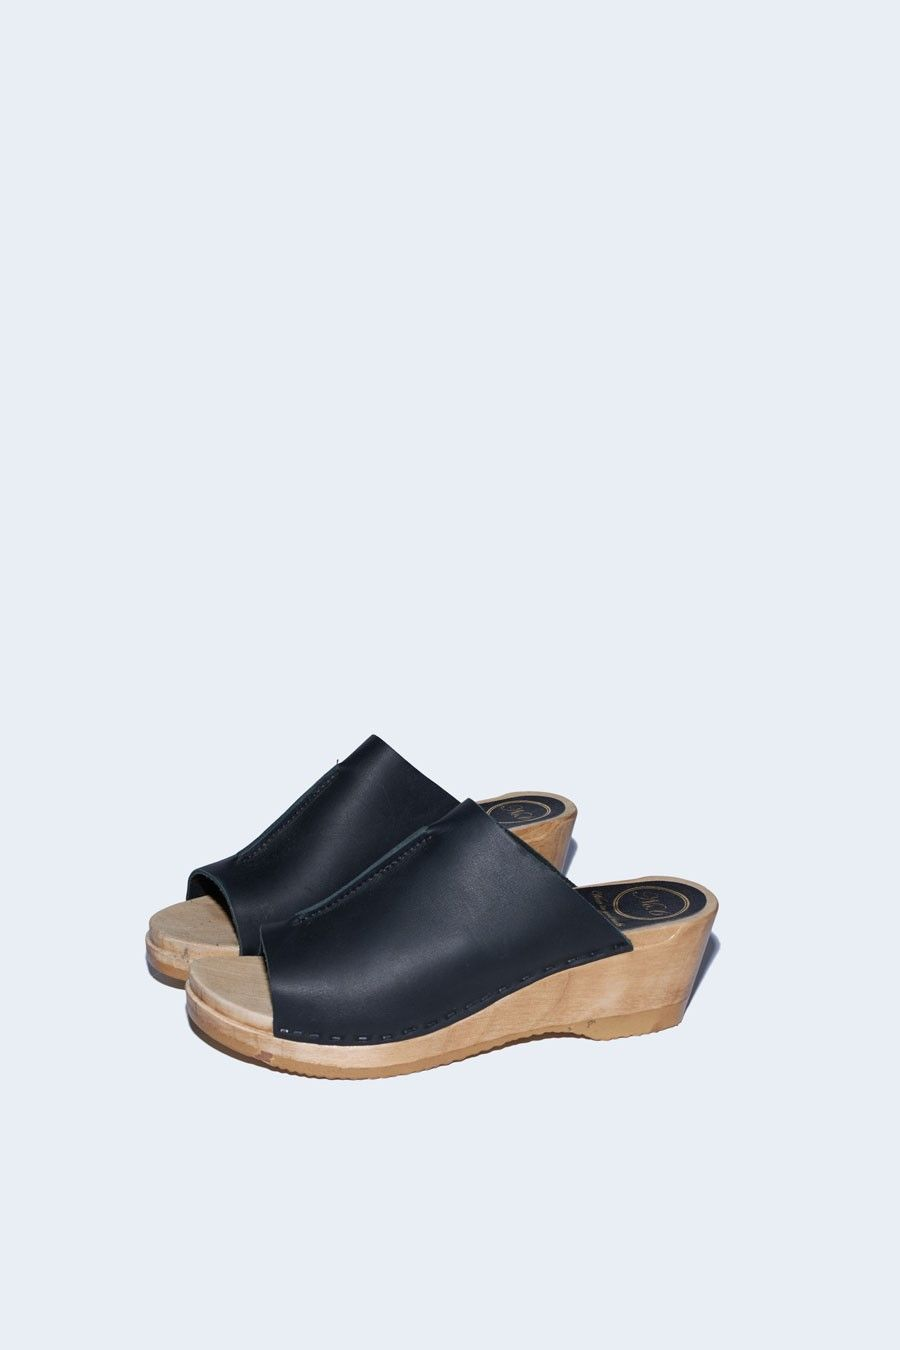 Front Seam Slide Clog On Mid Wedge In Black Clogs Clog